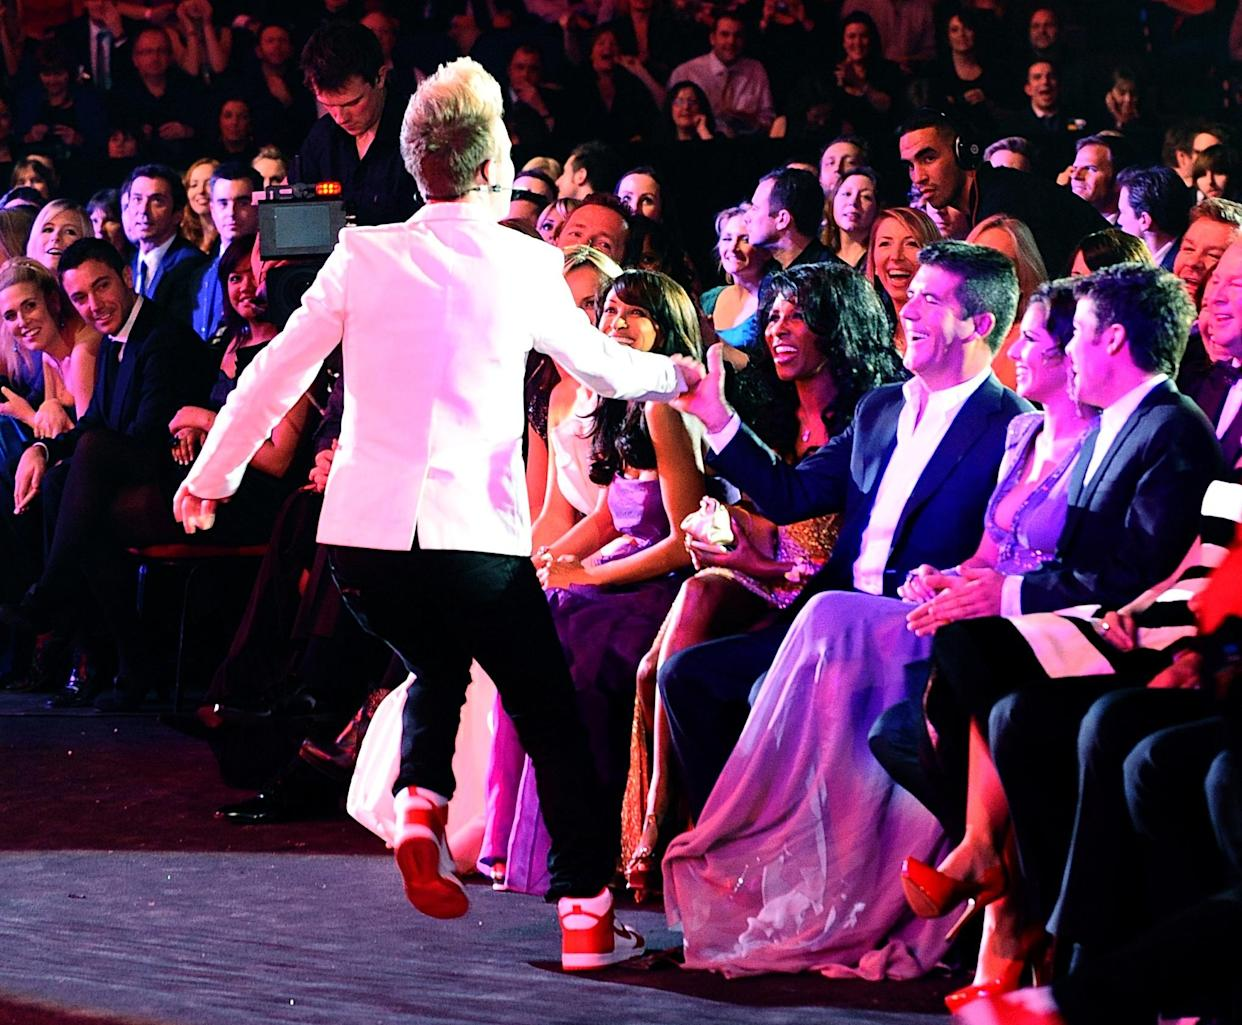 Jedward joke with Simon Cowell during the National Television Awards 2010, at the 02 Arena, London.